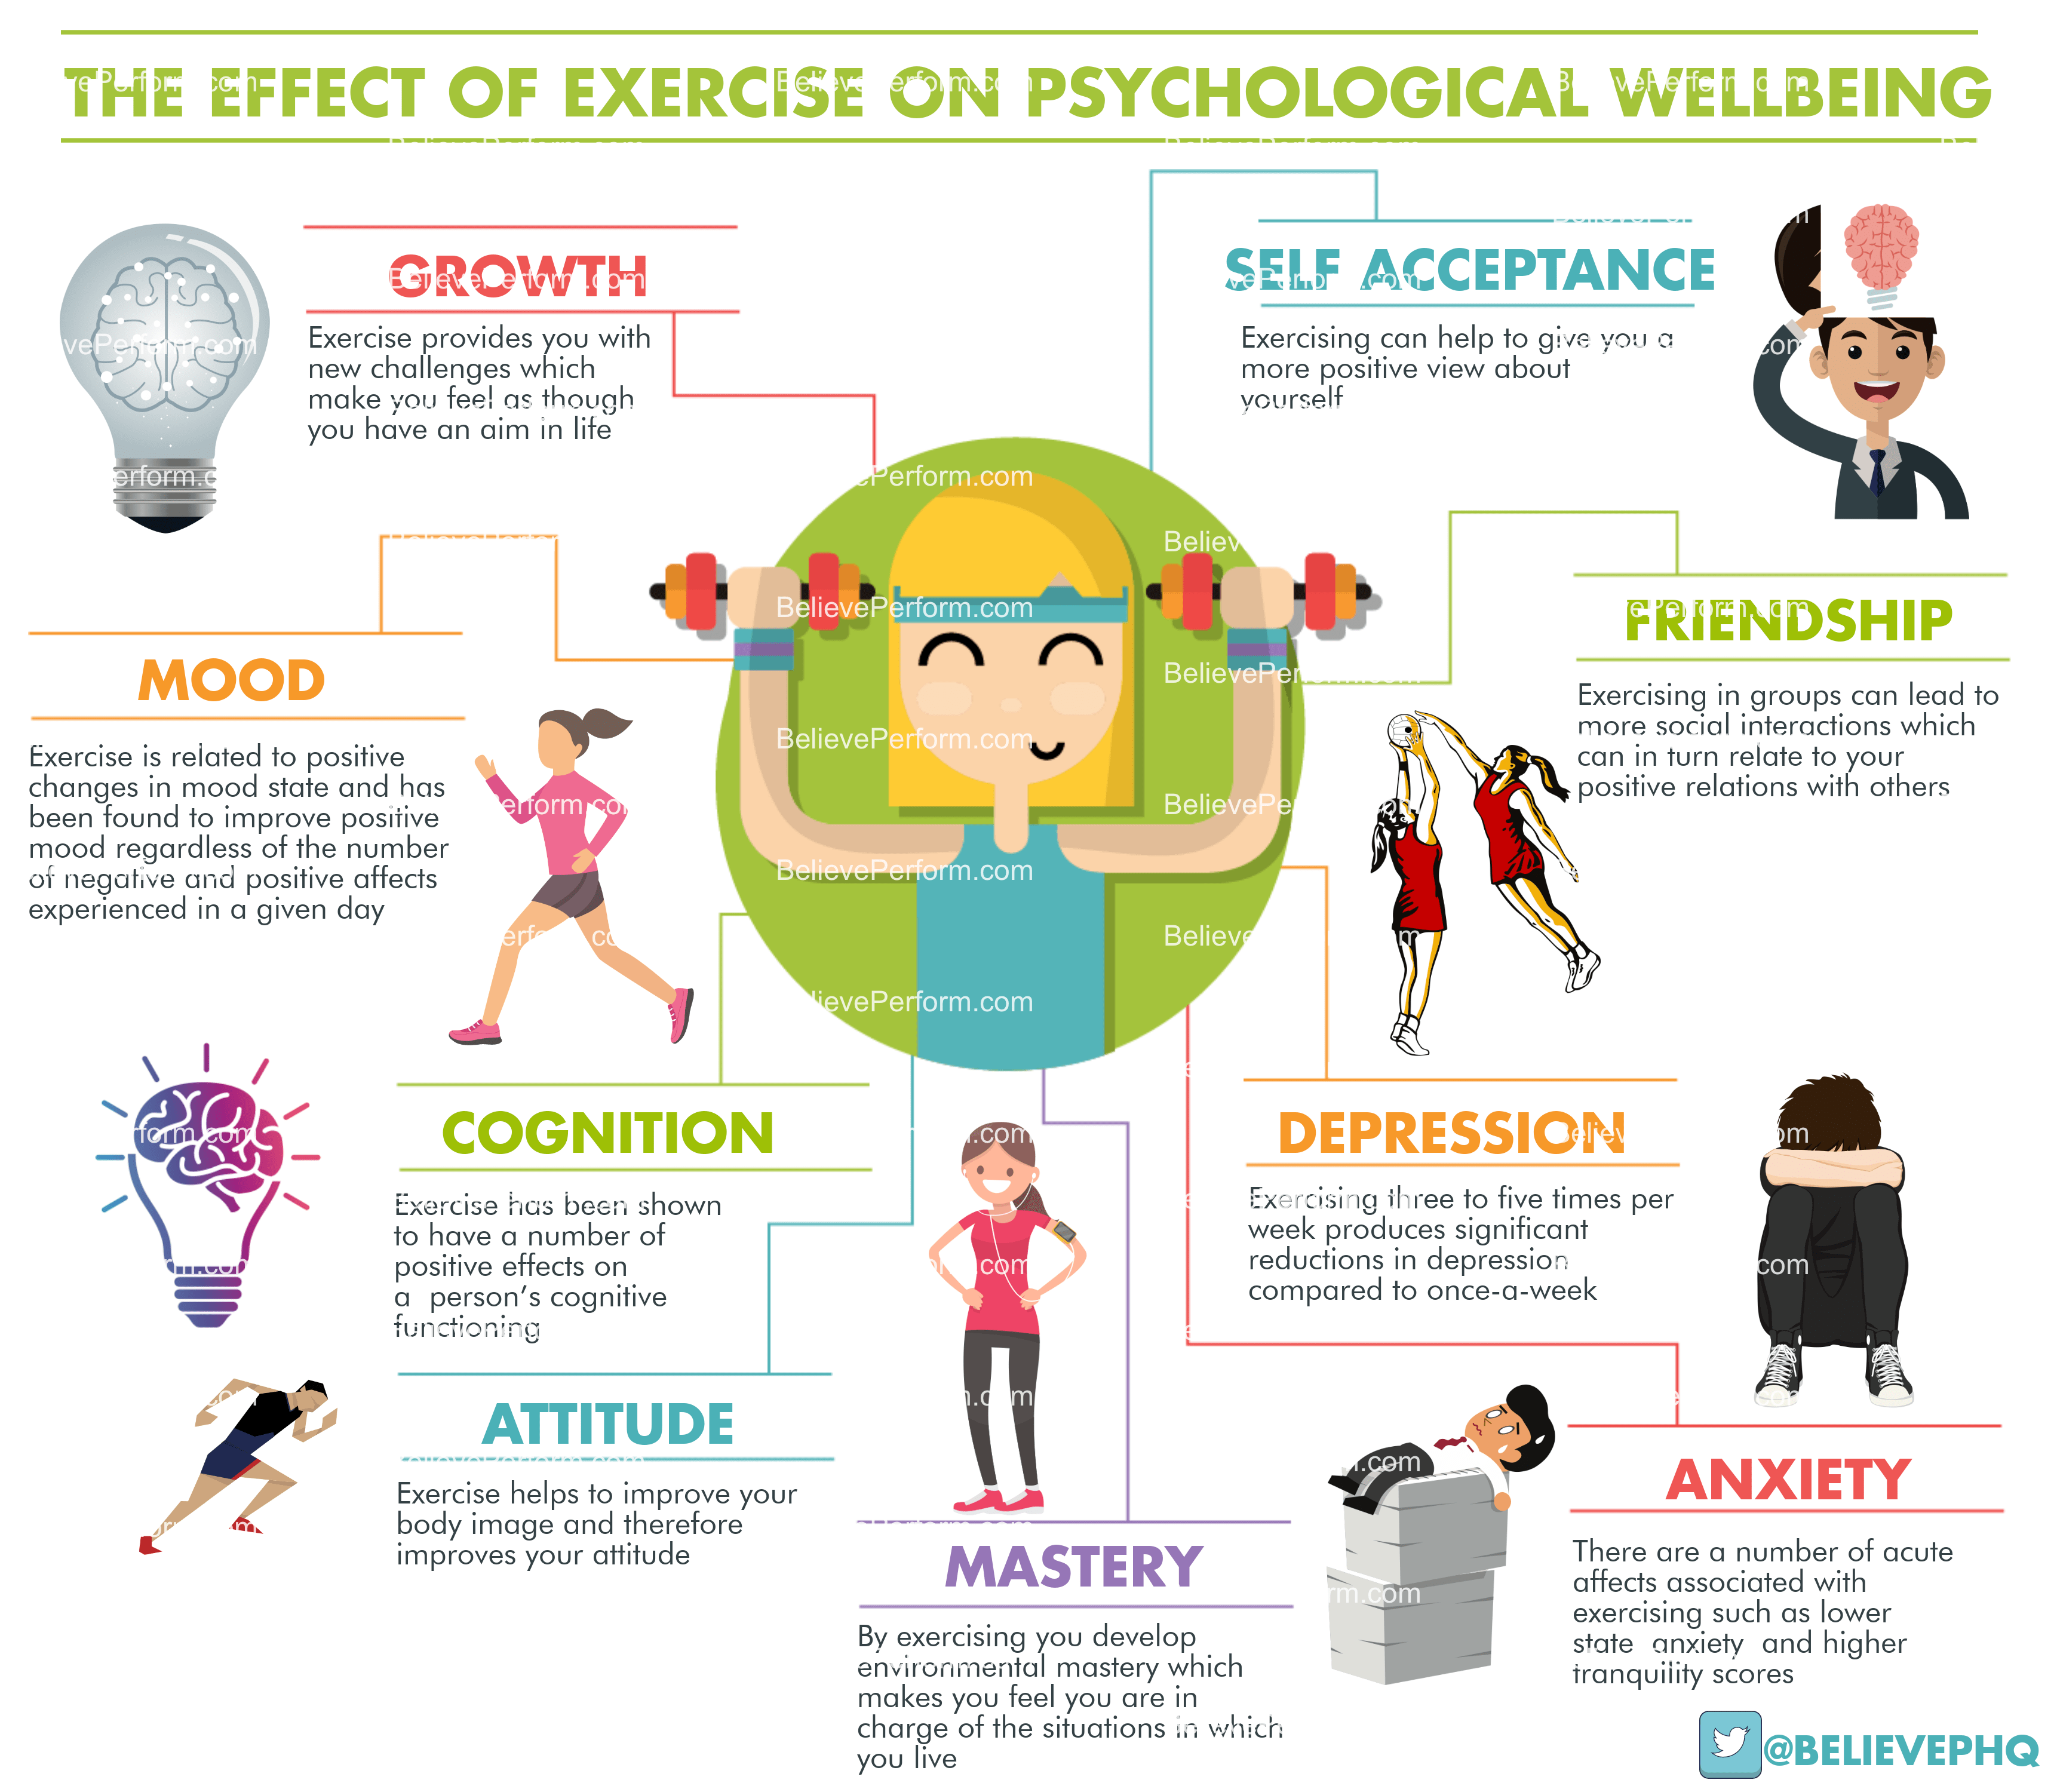 The Effect Of Exercise On Psychological Wellbeing